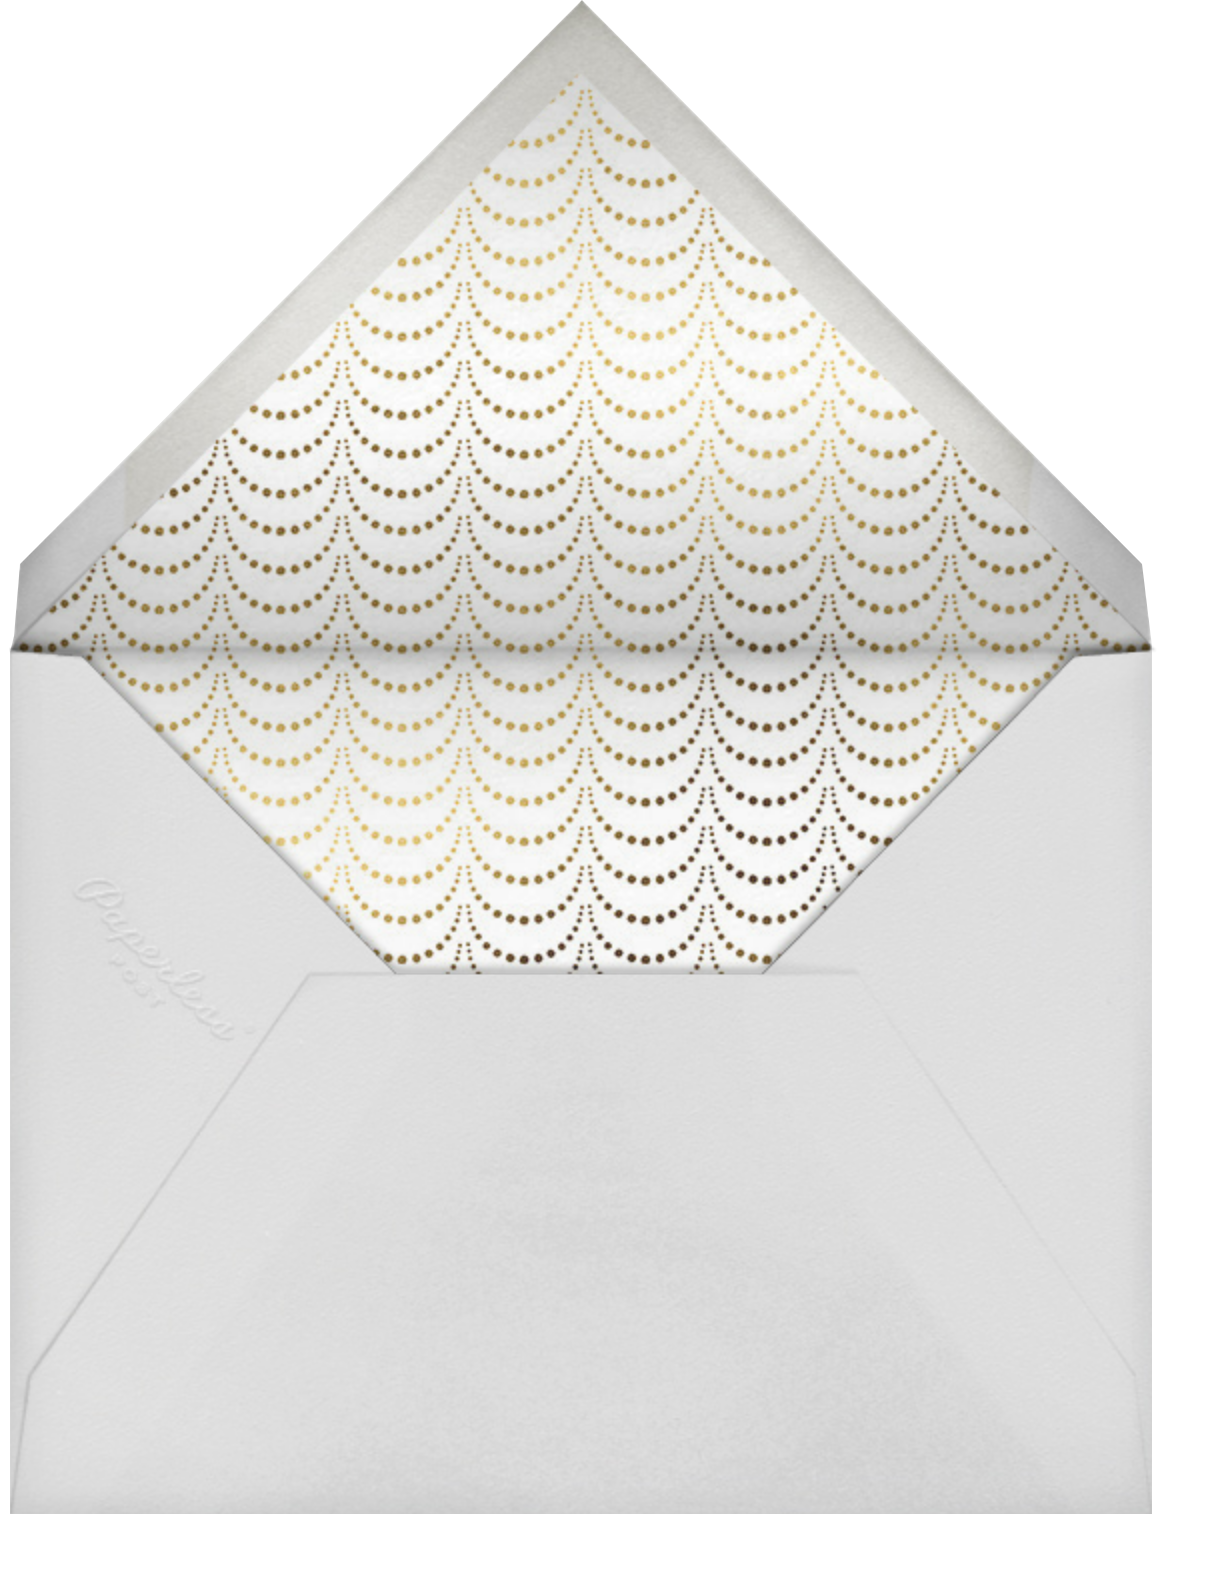 Happy Golden Days - Cheree Berry - Holiday cards - envelope back